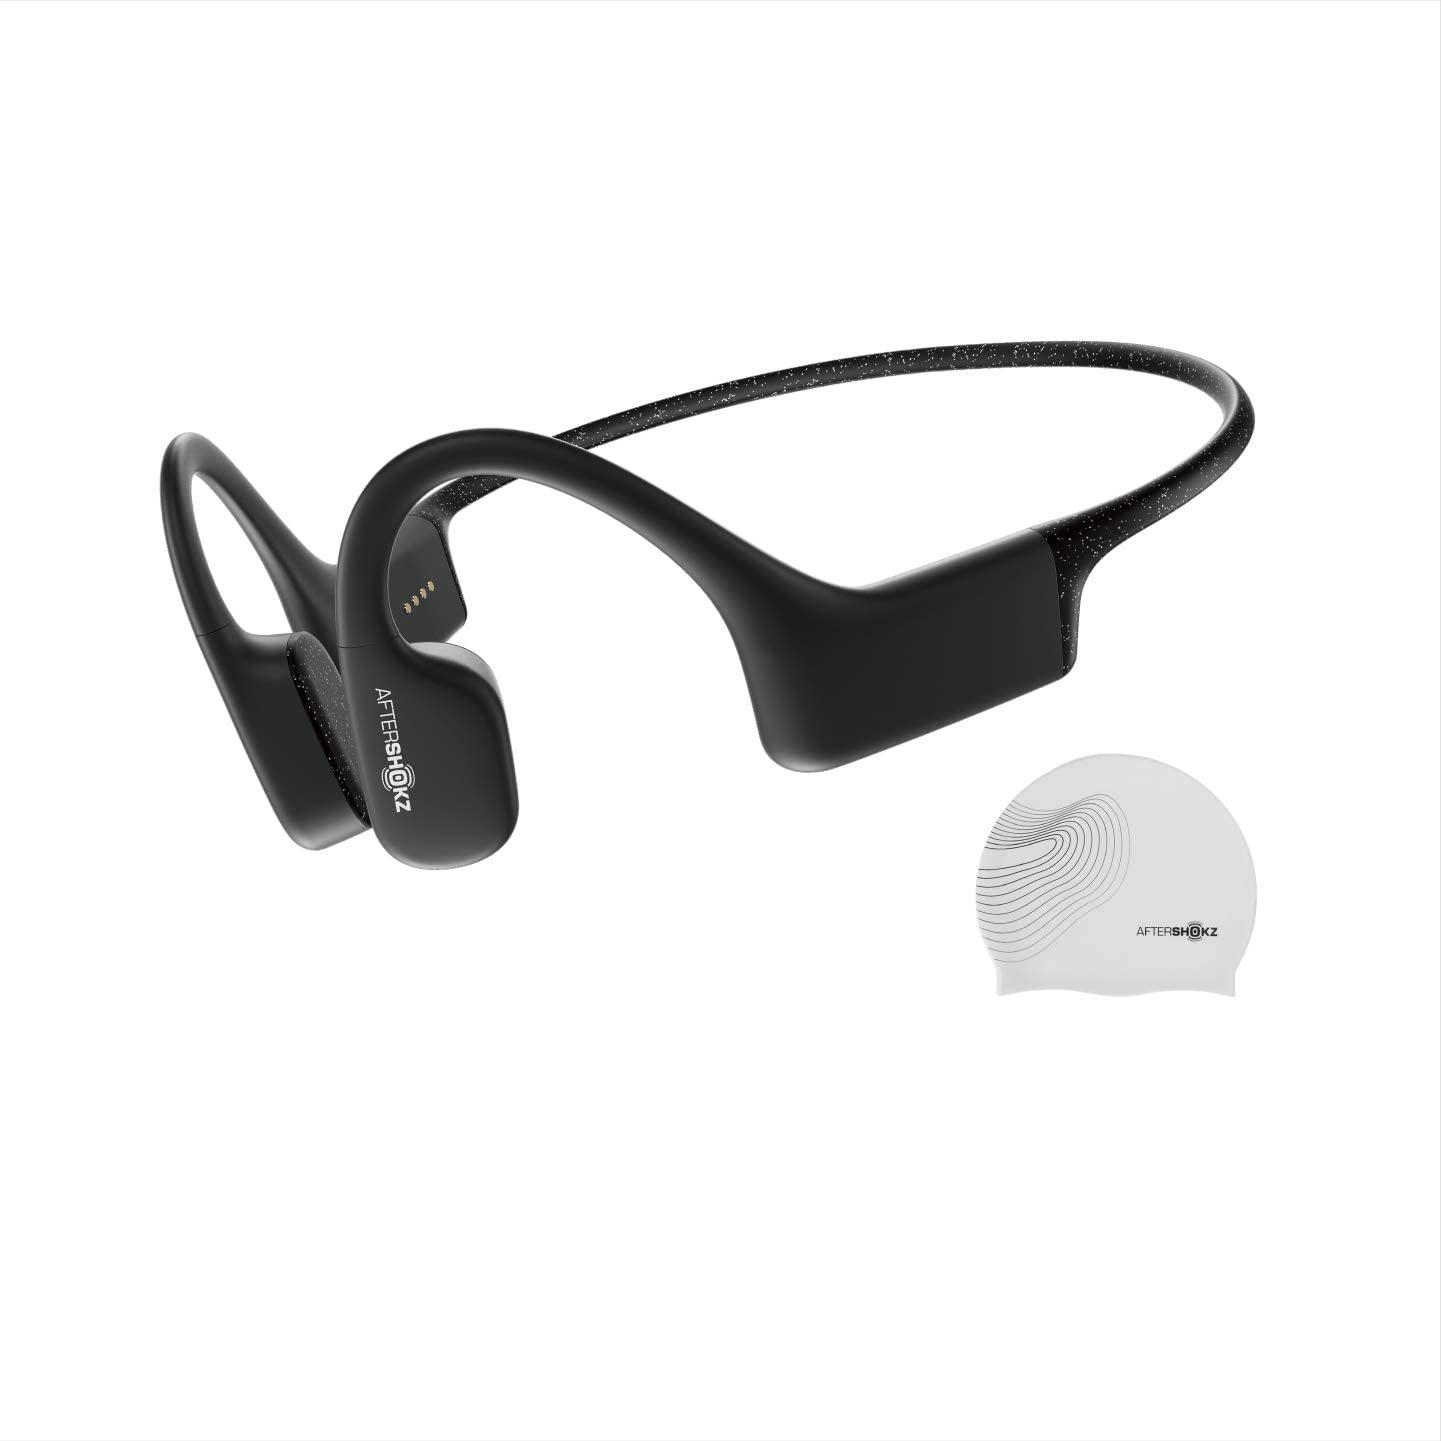 AfterShokz Xtrainerz Bluetooth Headphones For Biking bone conduction headphones is the best for the mountain and simple heavy biking